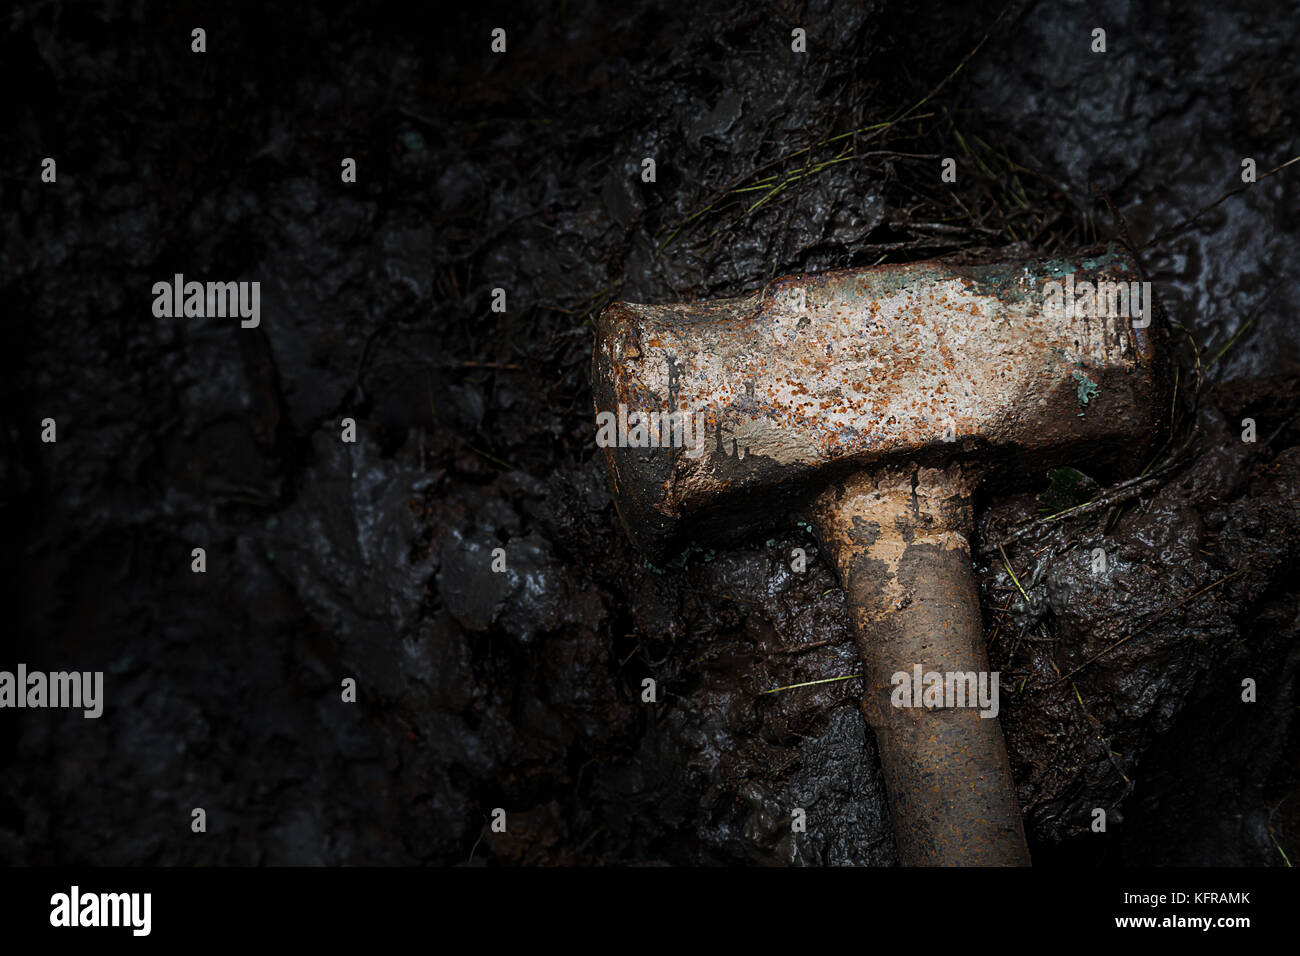 old rusty iron construction hammer on the mud, dramatic photography and low key photography. - Stock Image